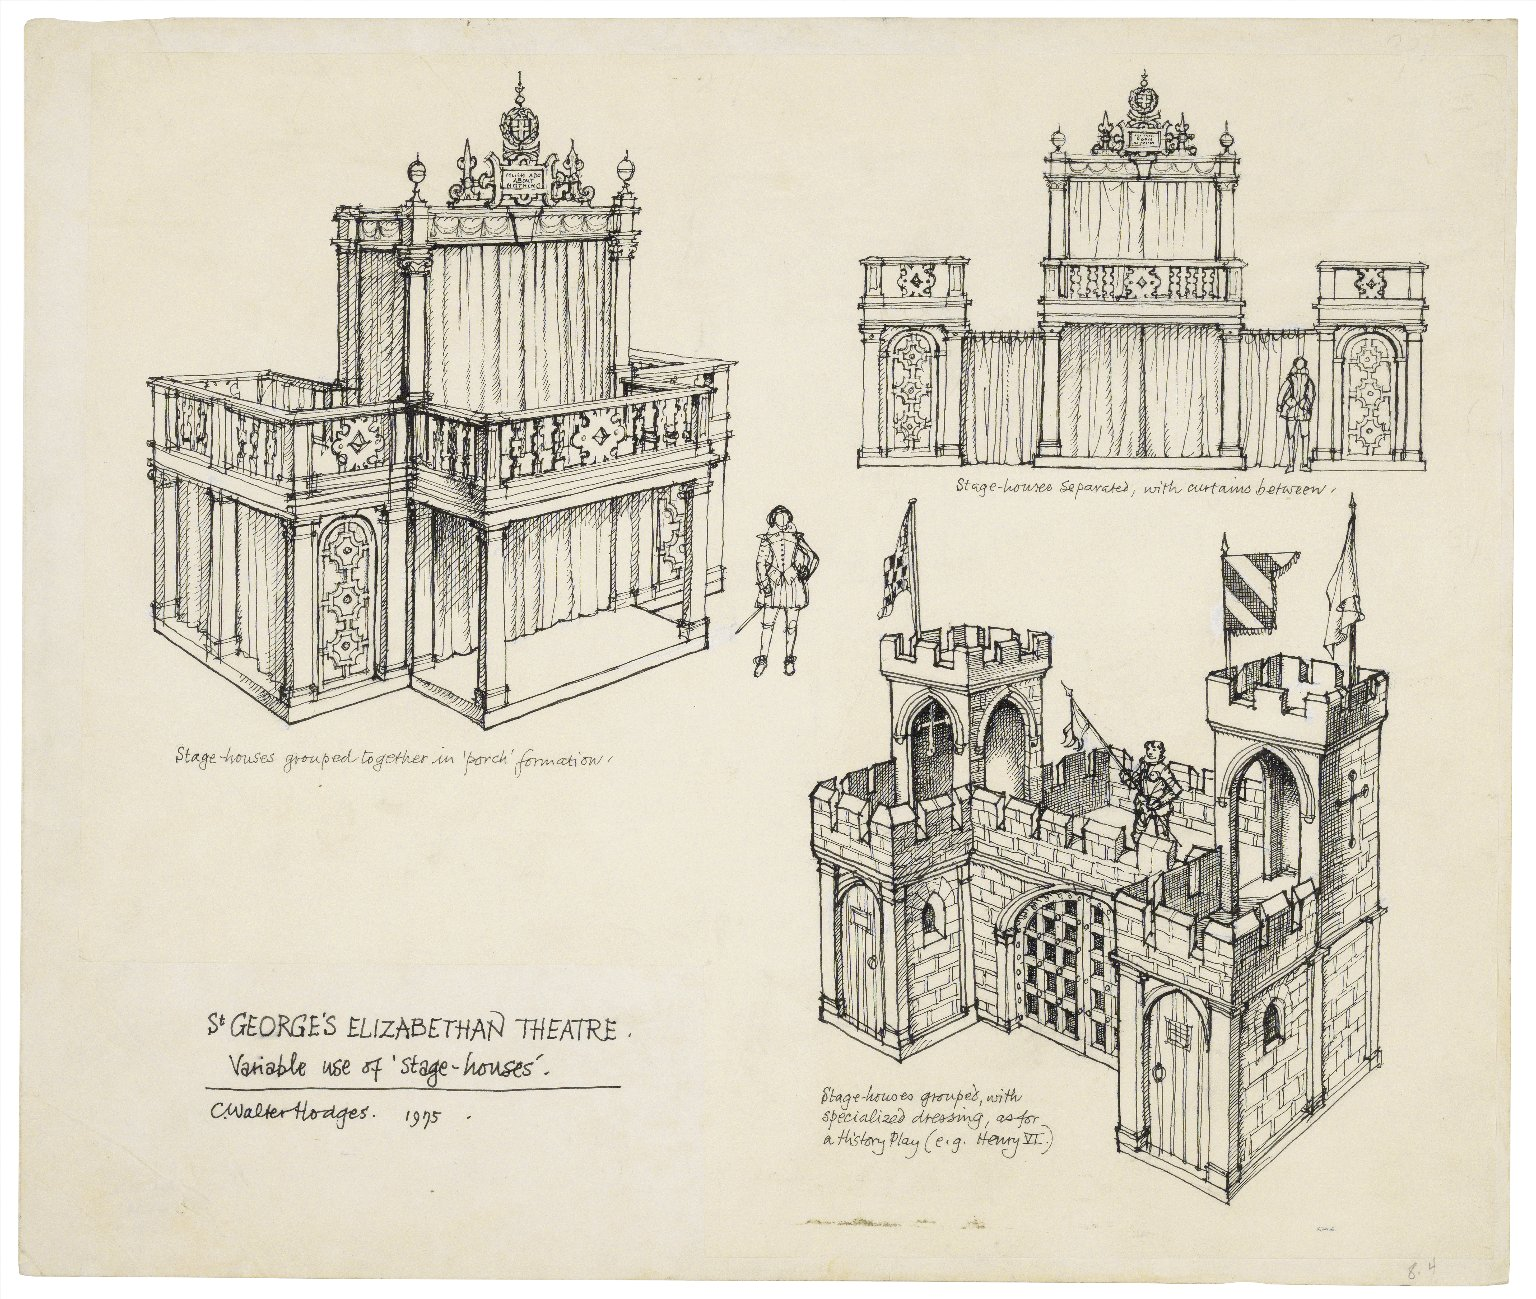 St. Georges Theatre. Three views of stage-houses in different formations